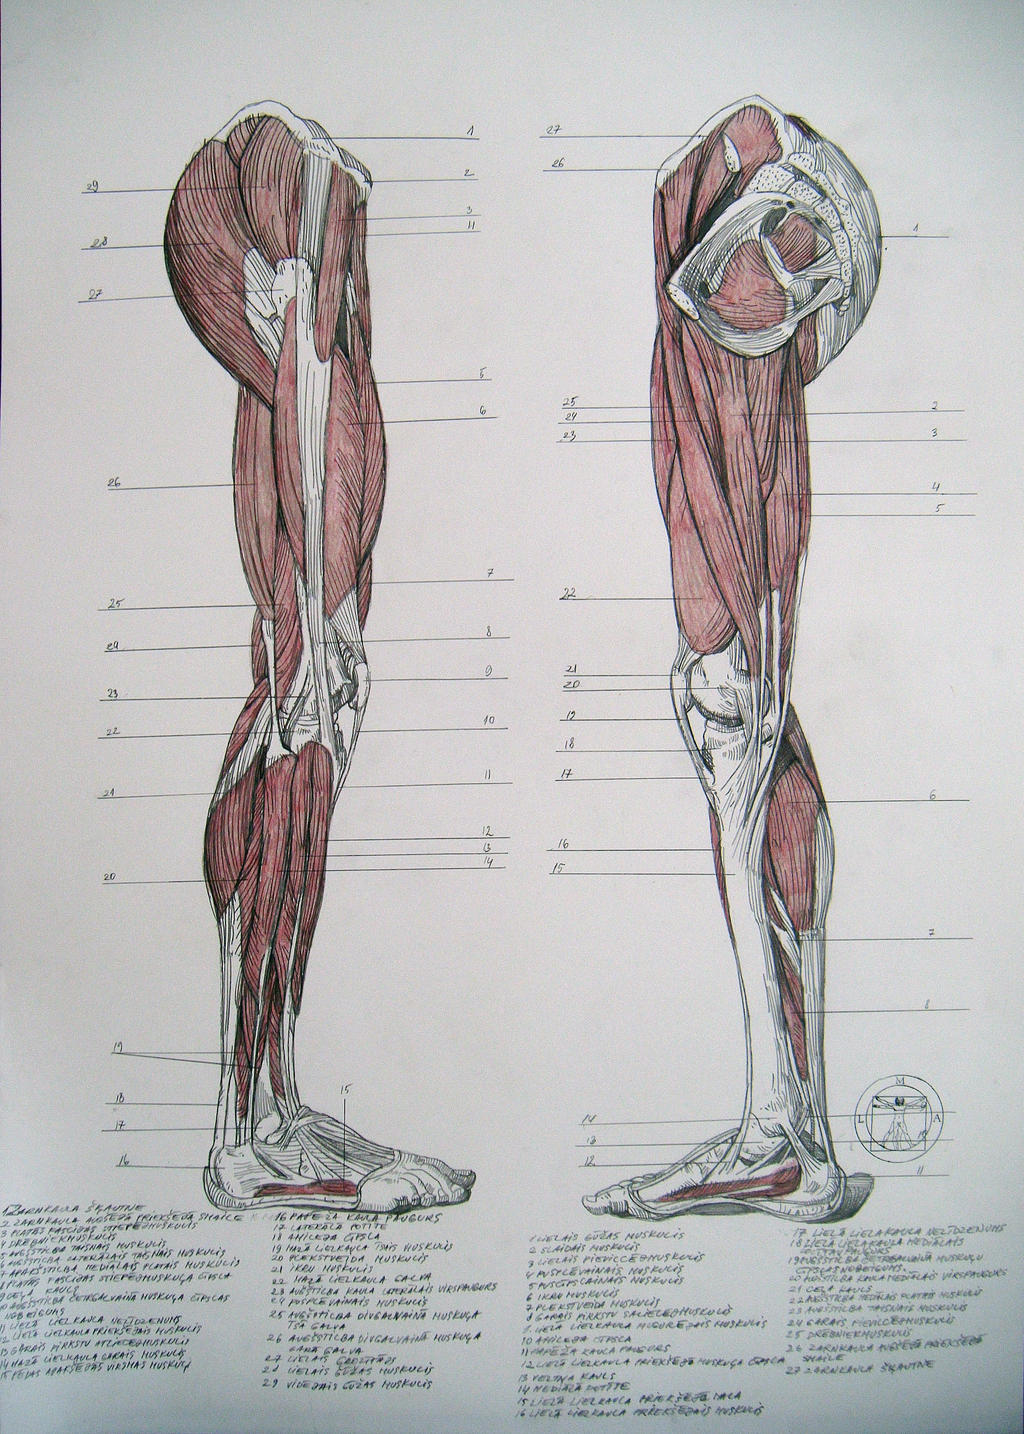 Anatomy of legs muscles